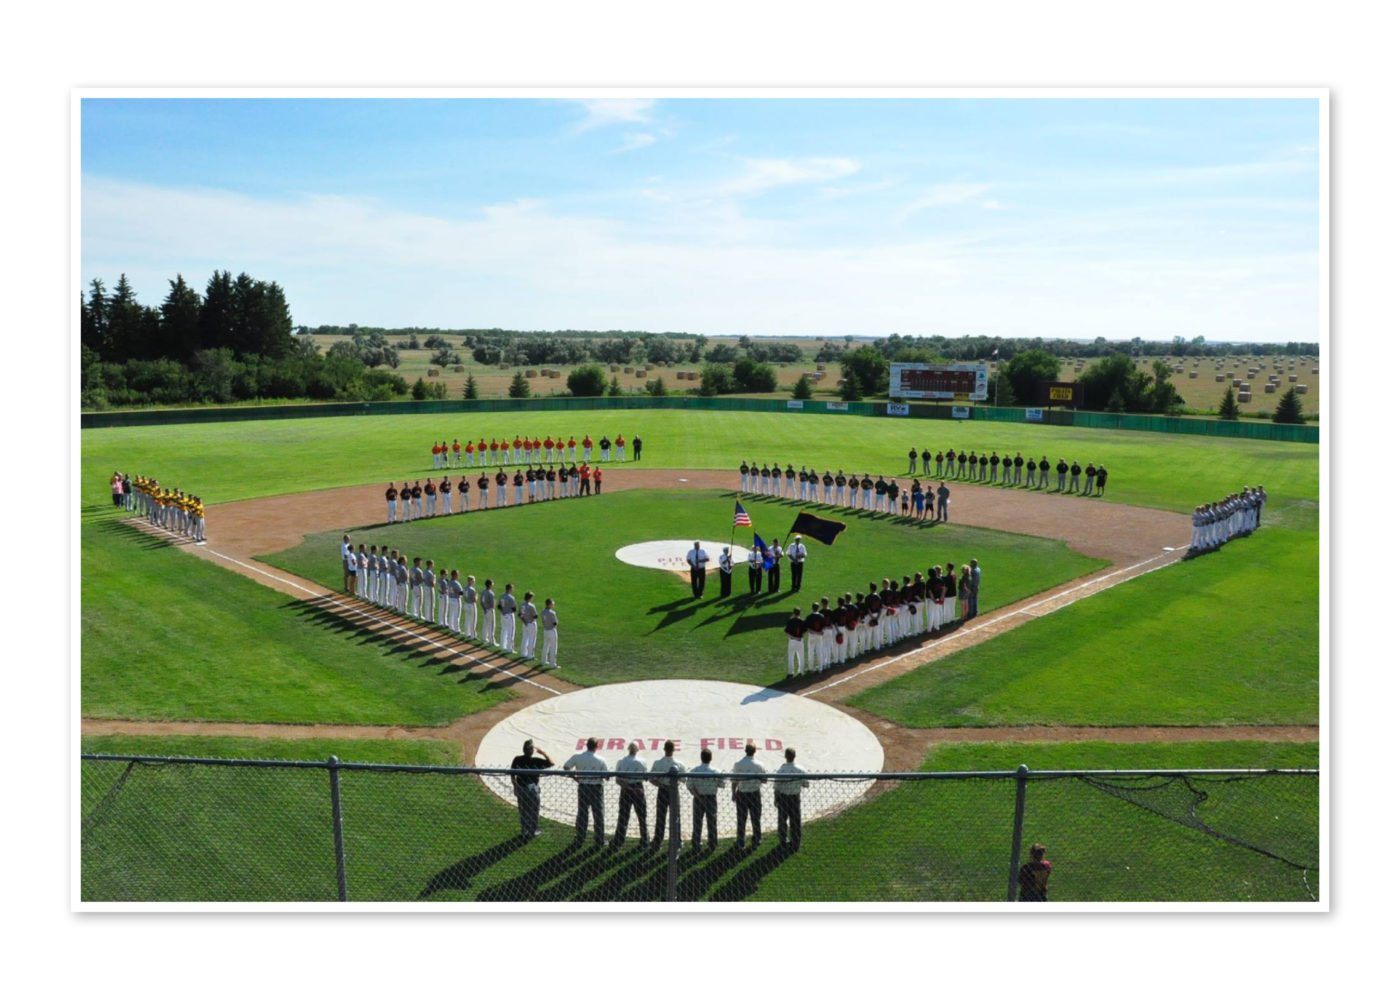 Several Legion baseball teams line the field, standing at attention for the national anthem